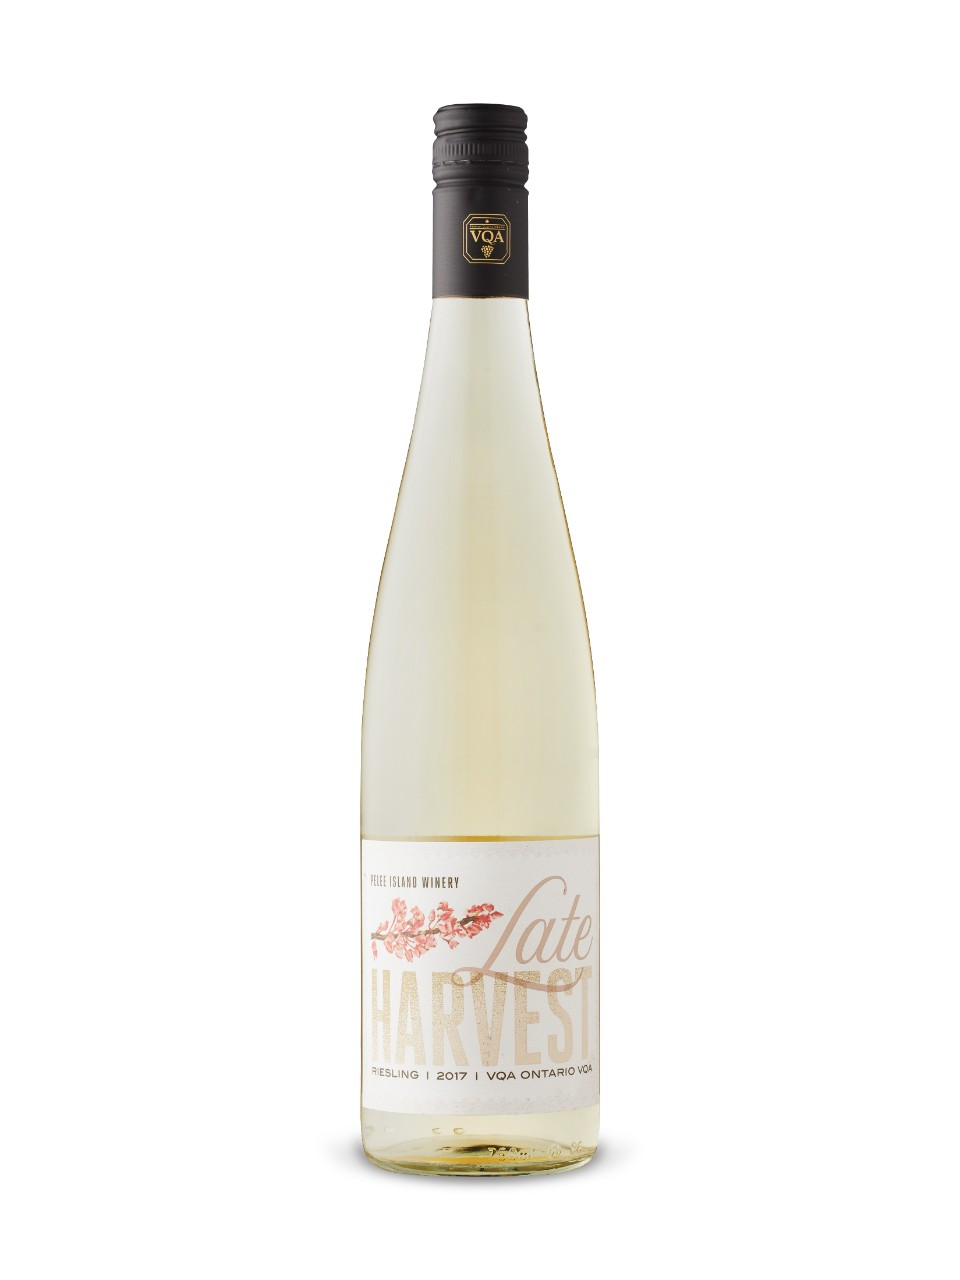 Pelee Island Winery Late Harvest Riesling 2017 from LCBO